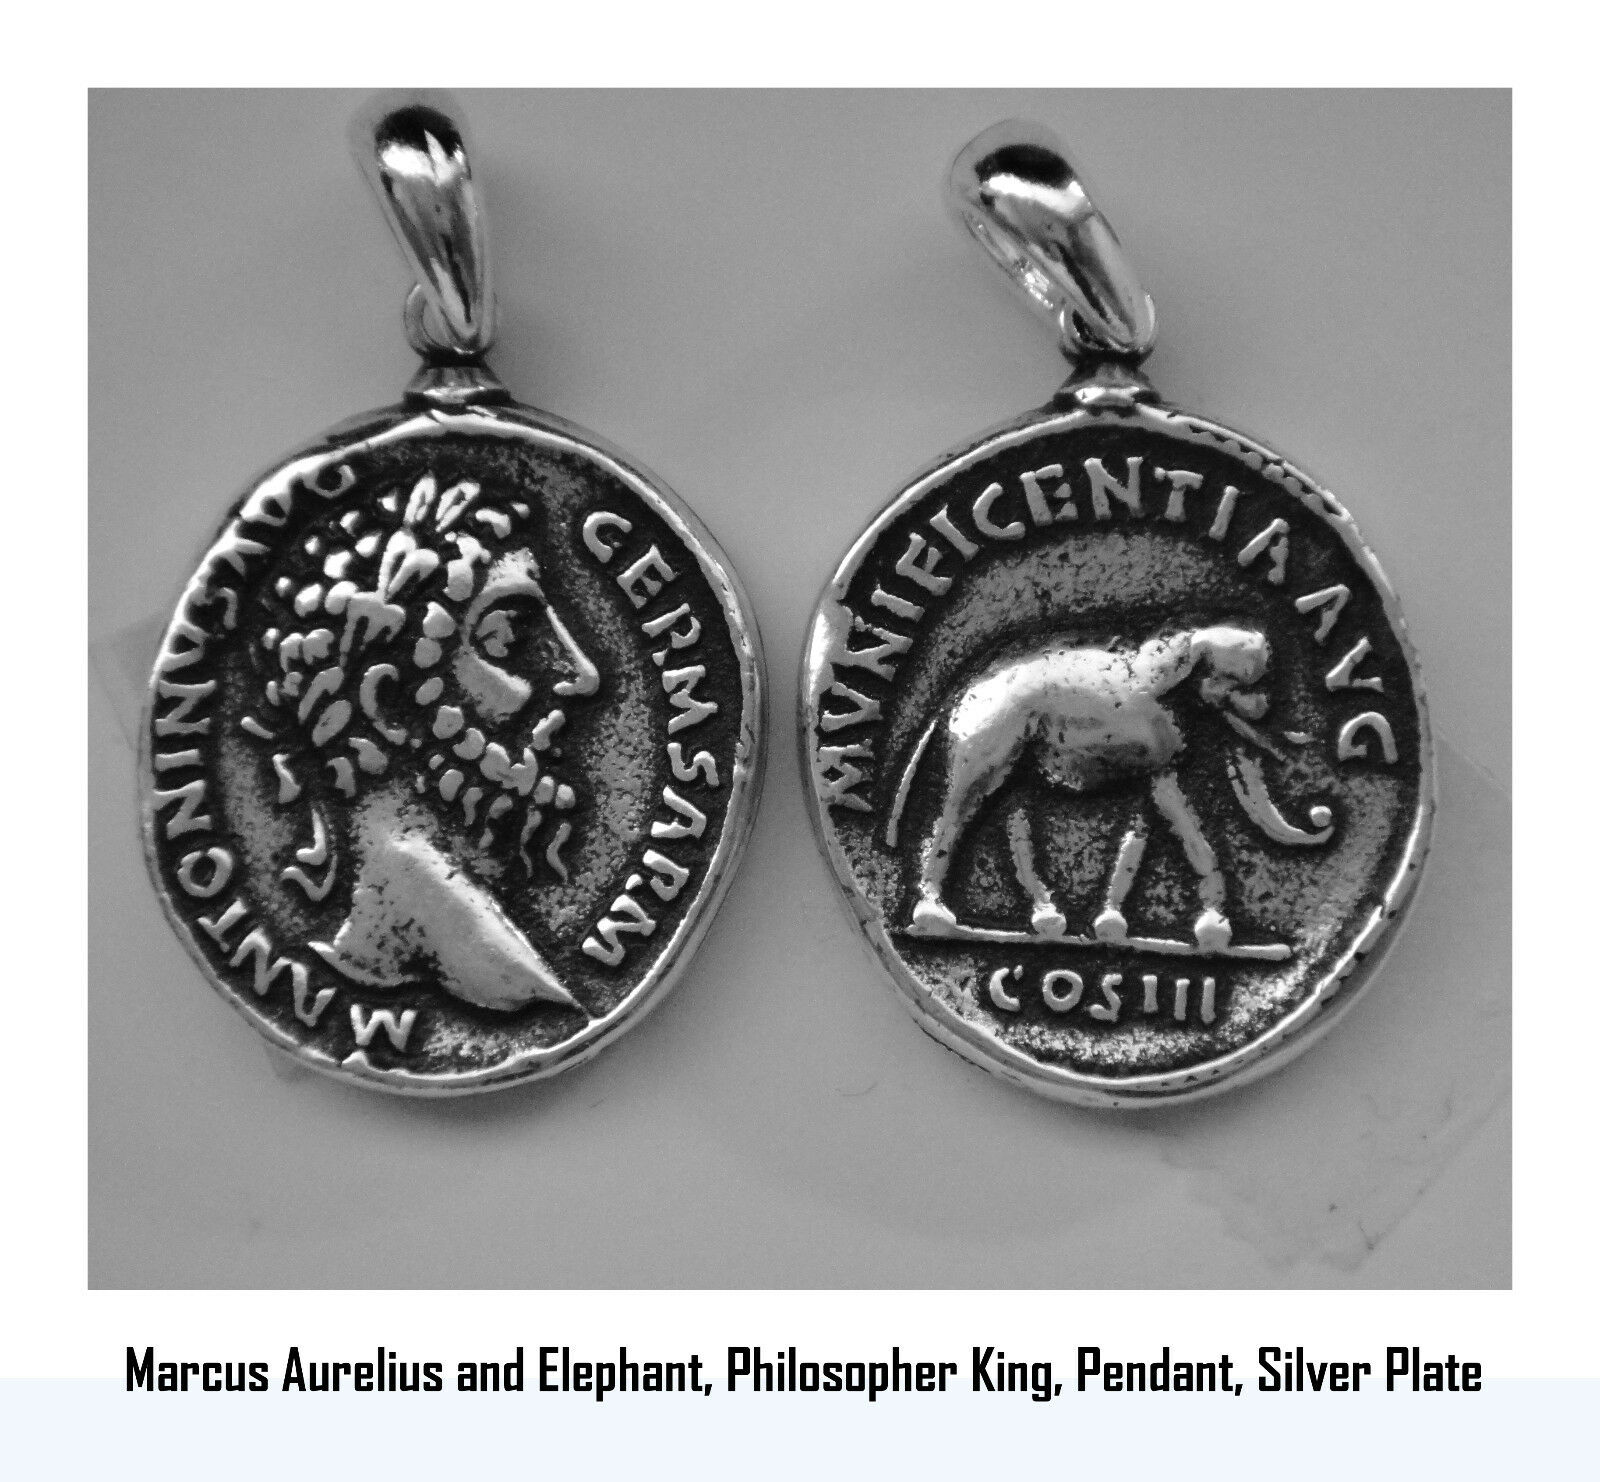 Marcus Aurelius, Philosopher King, Necklace, Pendant, 26-S